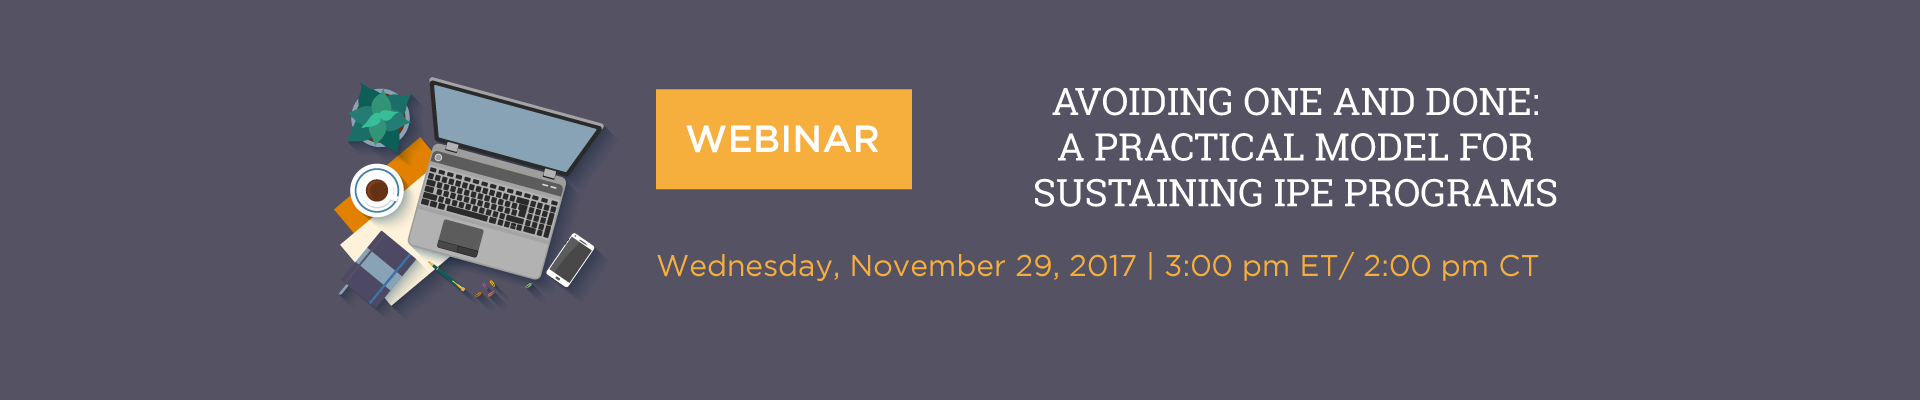 webinar november 29: avoiding one and done